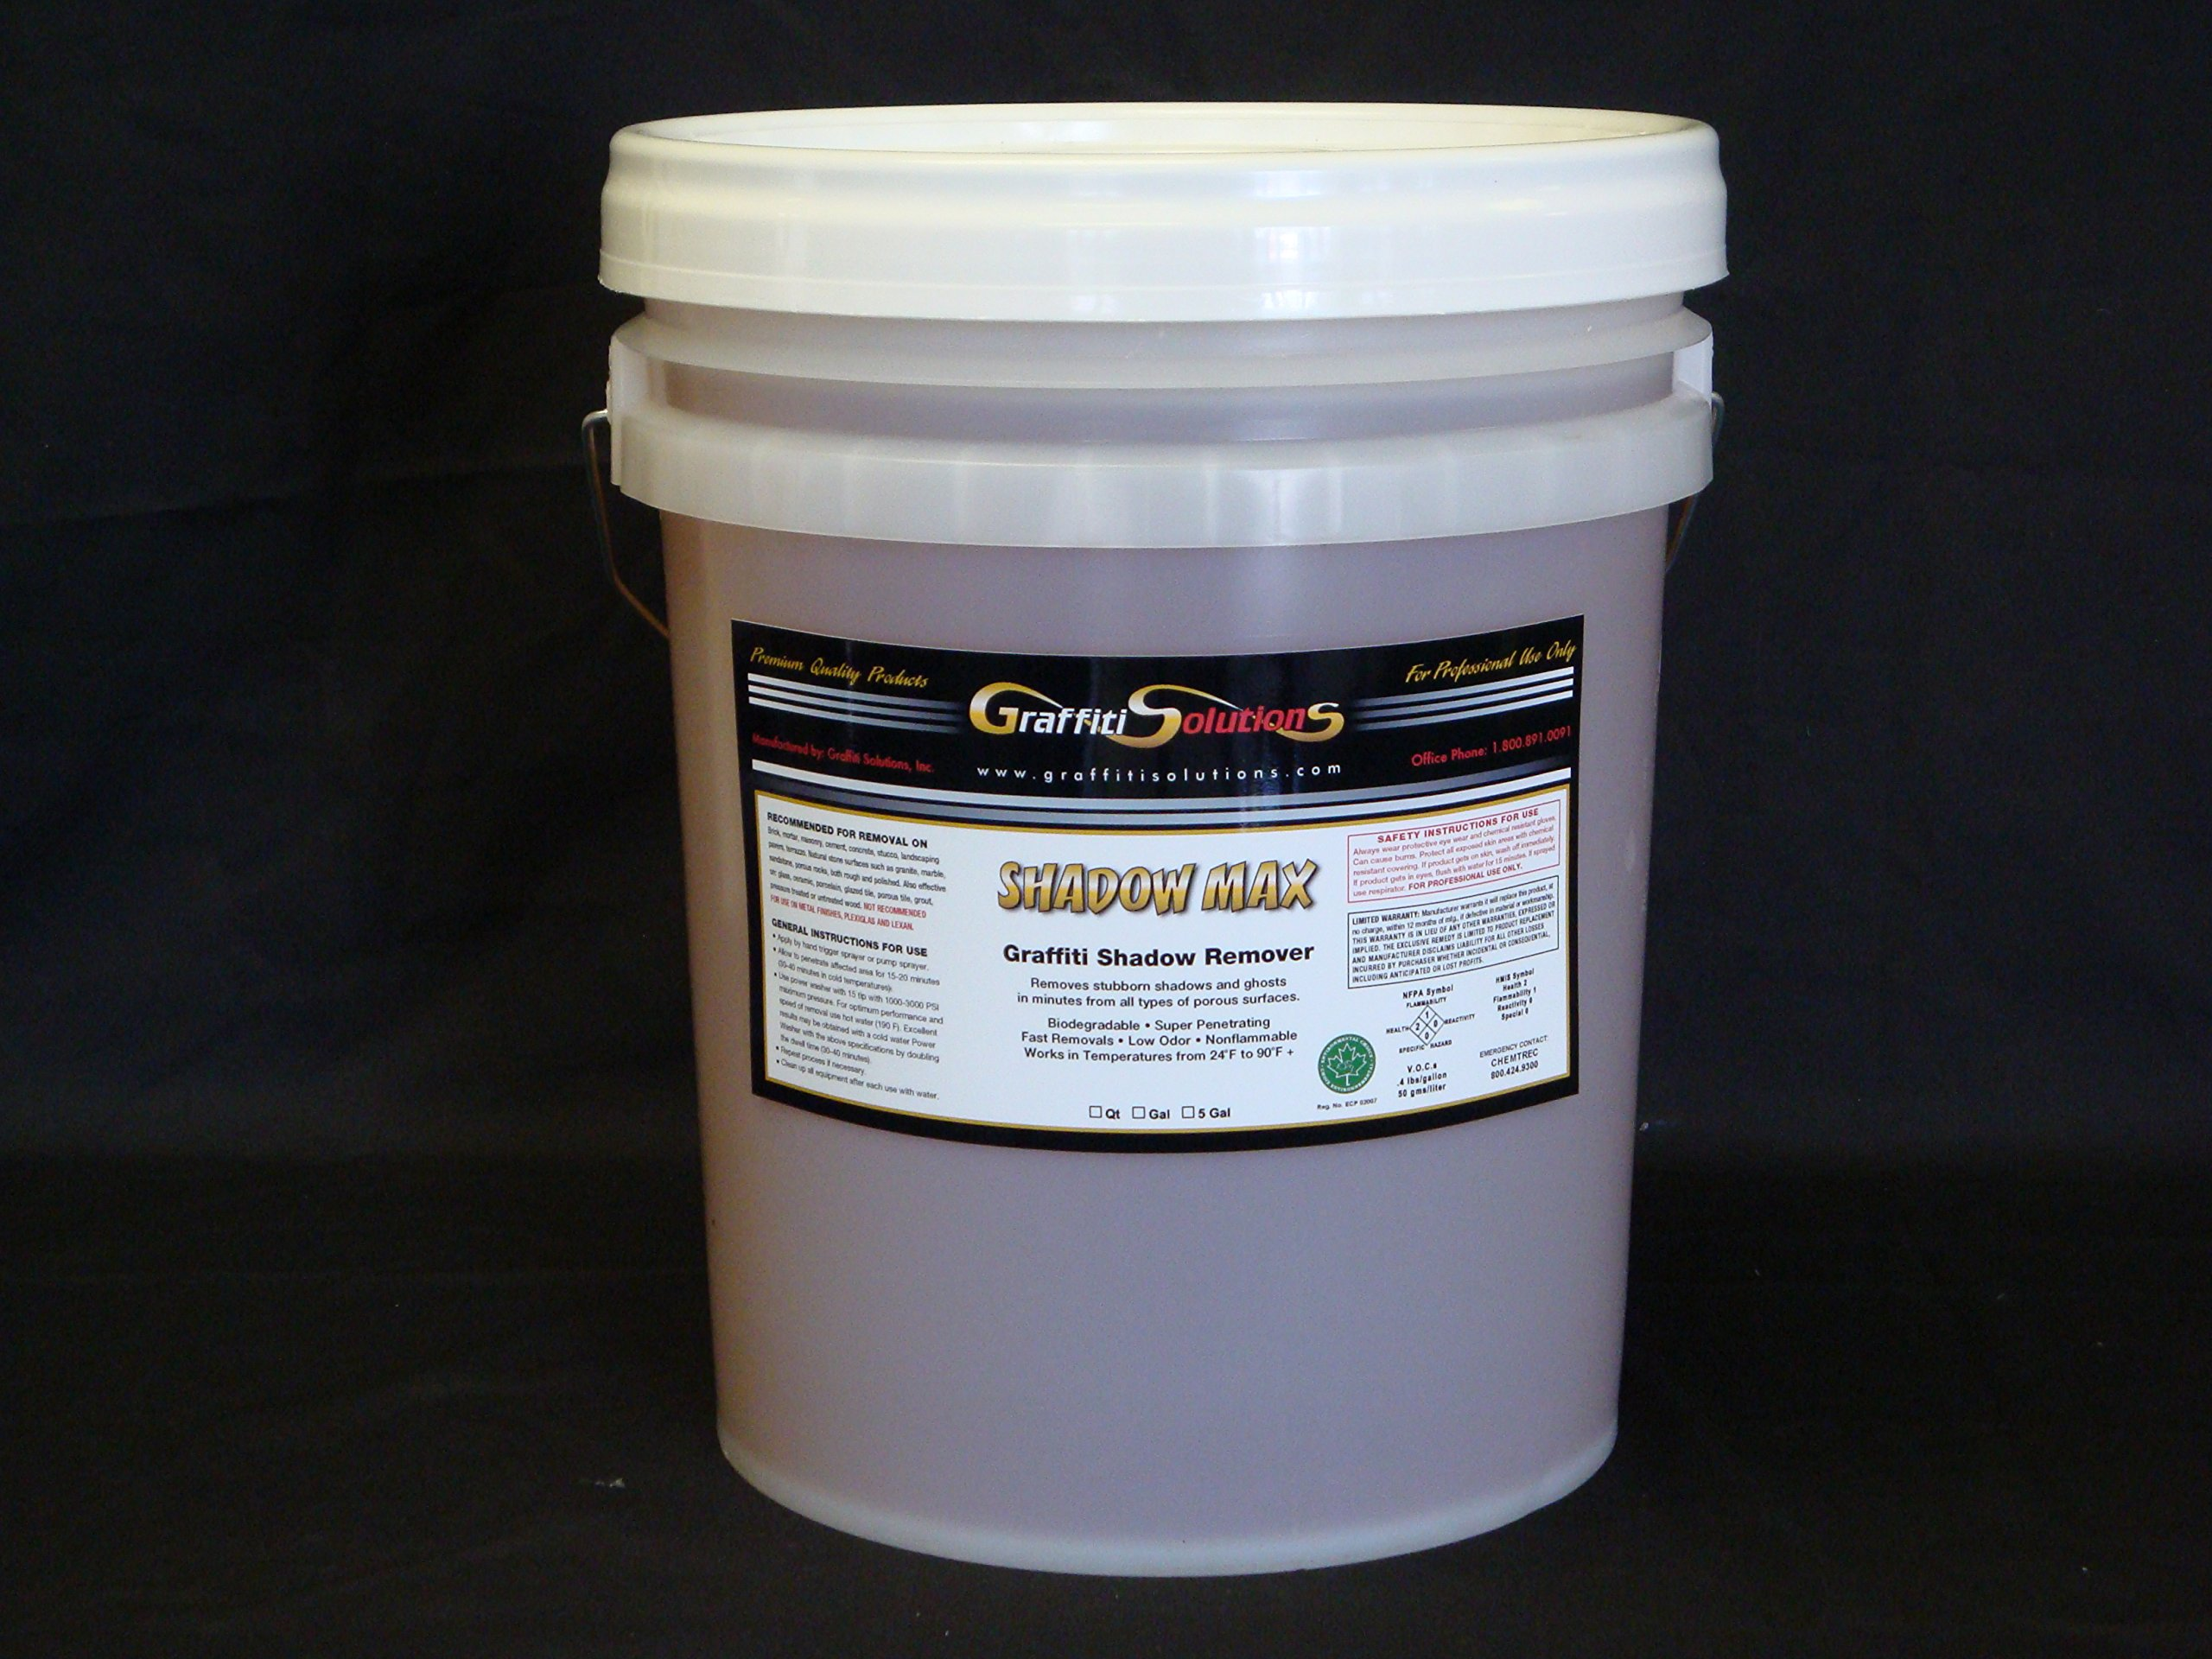 SHADOW MAX Graffiti Shadow Professional Remover 5 Gal for Effective removal of shadows, ghosting, residues left by spray paint, markers, inks. on porous surfaces after using conventional removers